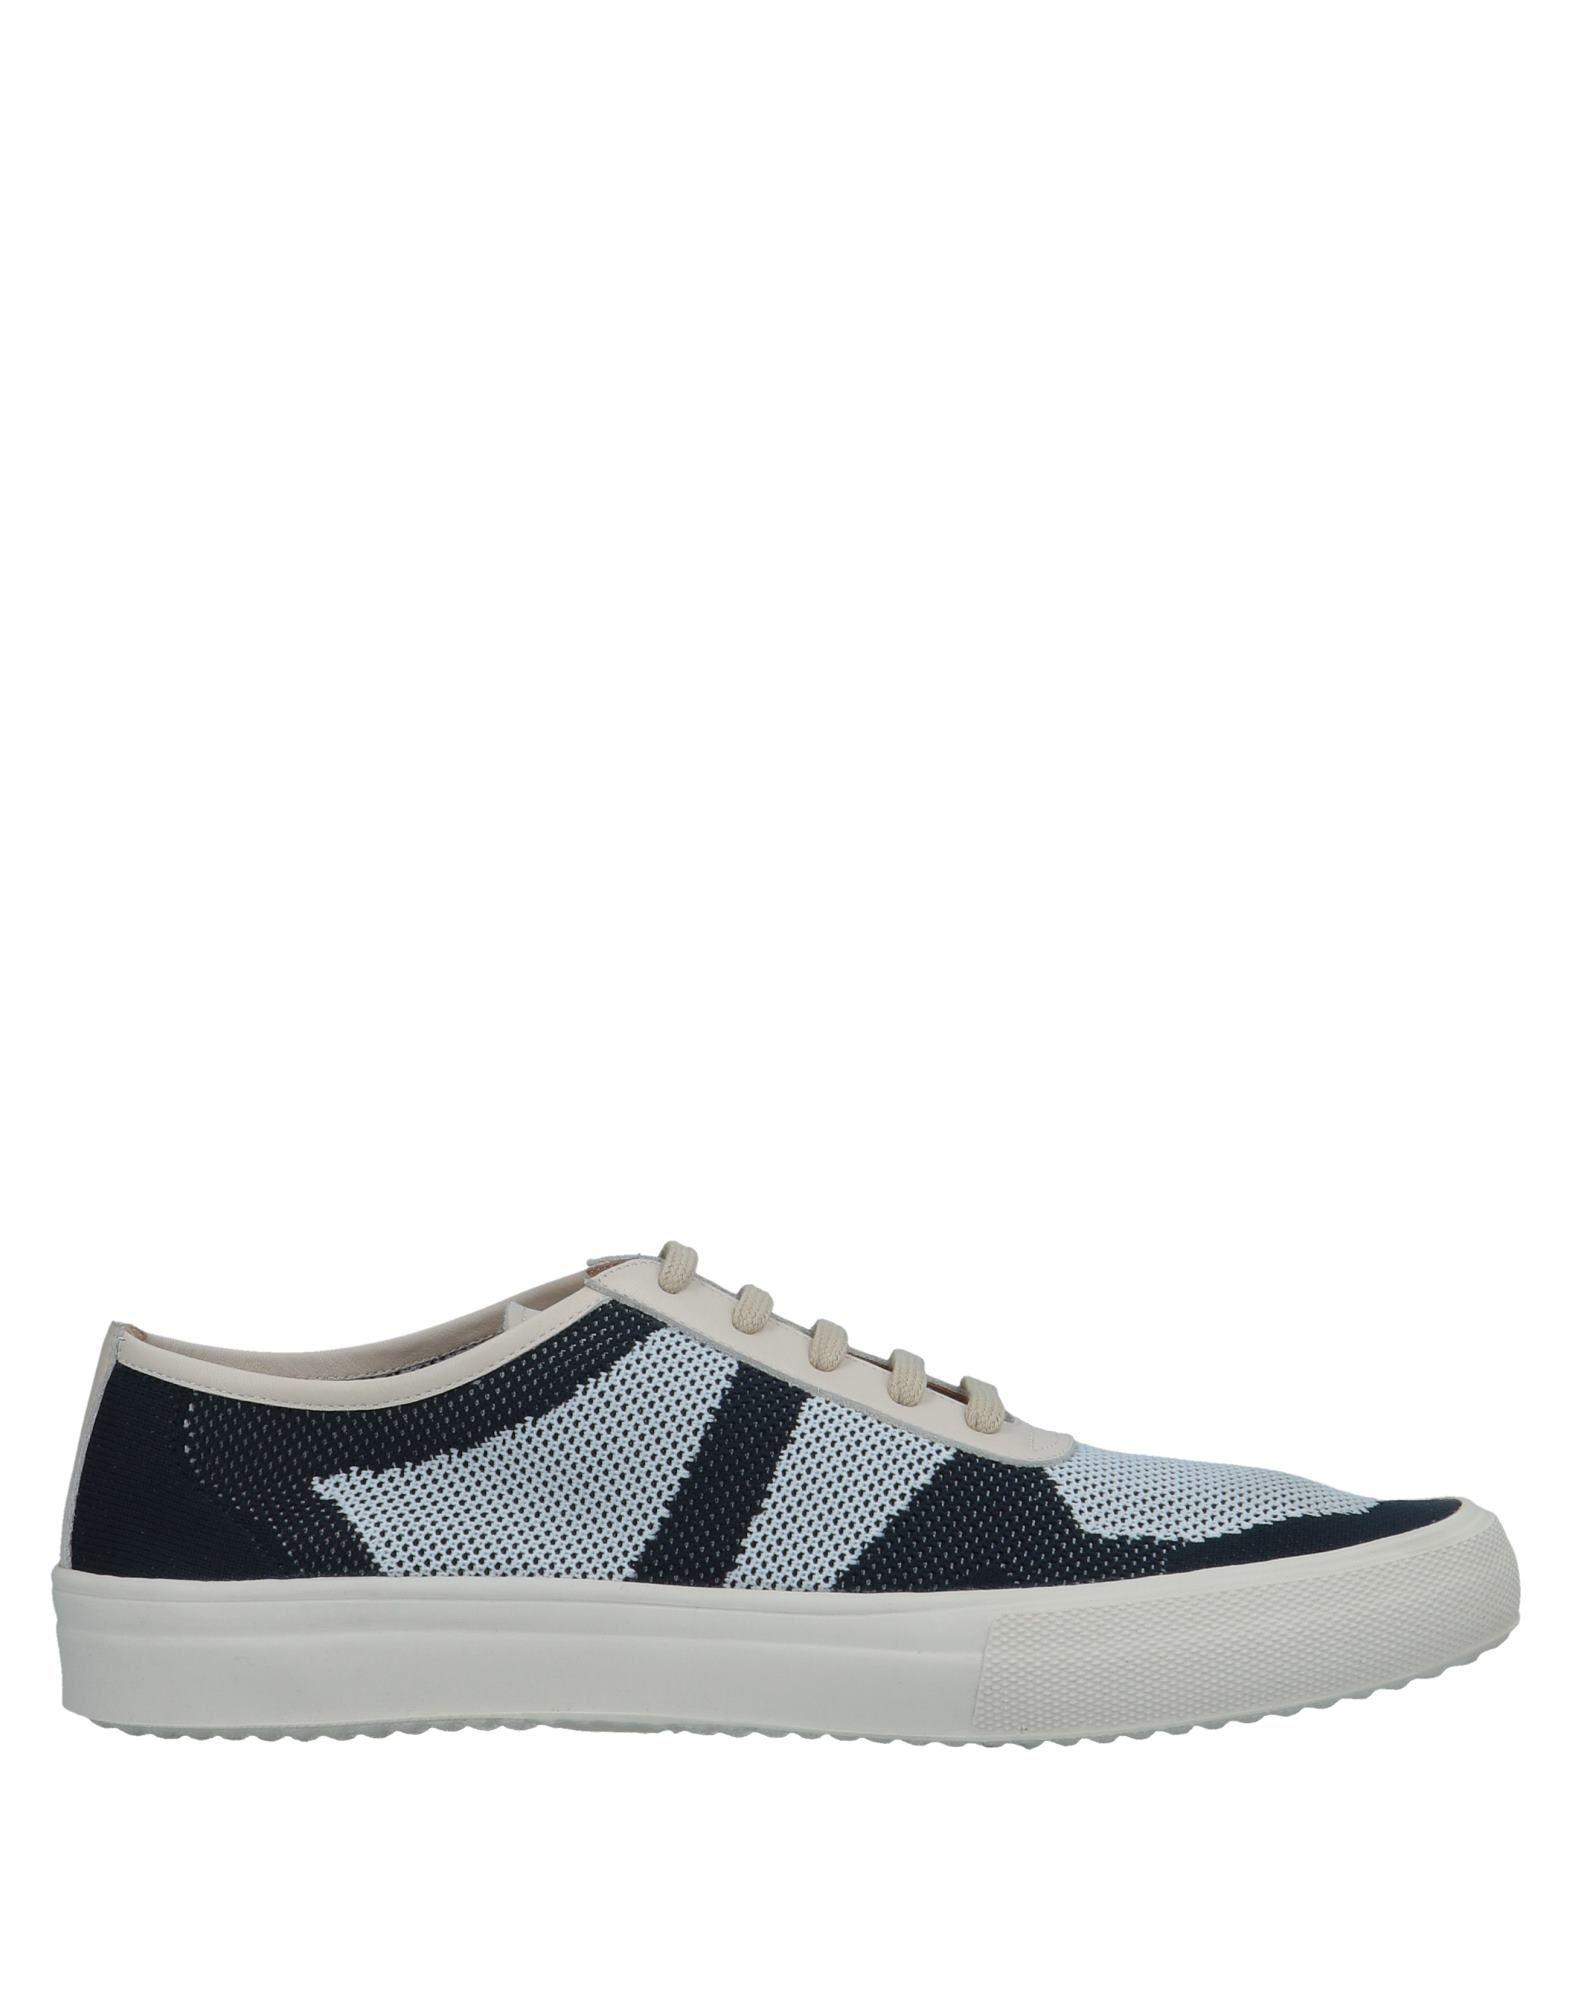 238c95687d Dries Van Noten Low-tops   Sneakers in Blue for Men - Lyst